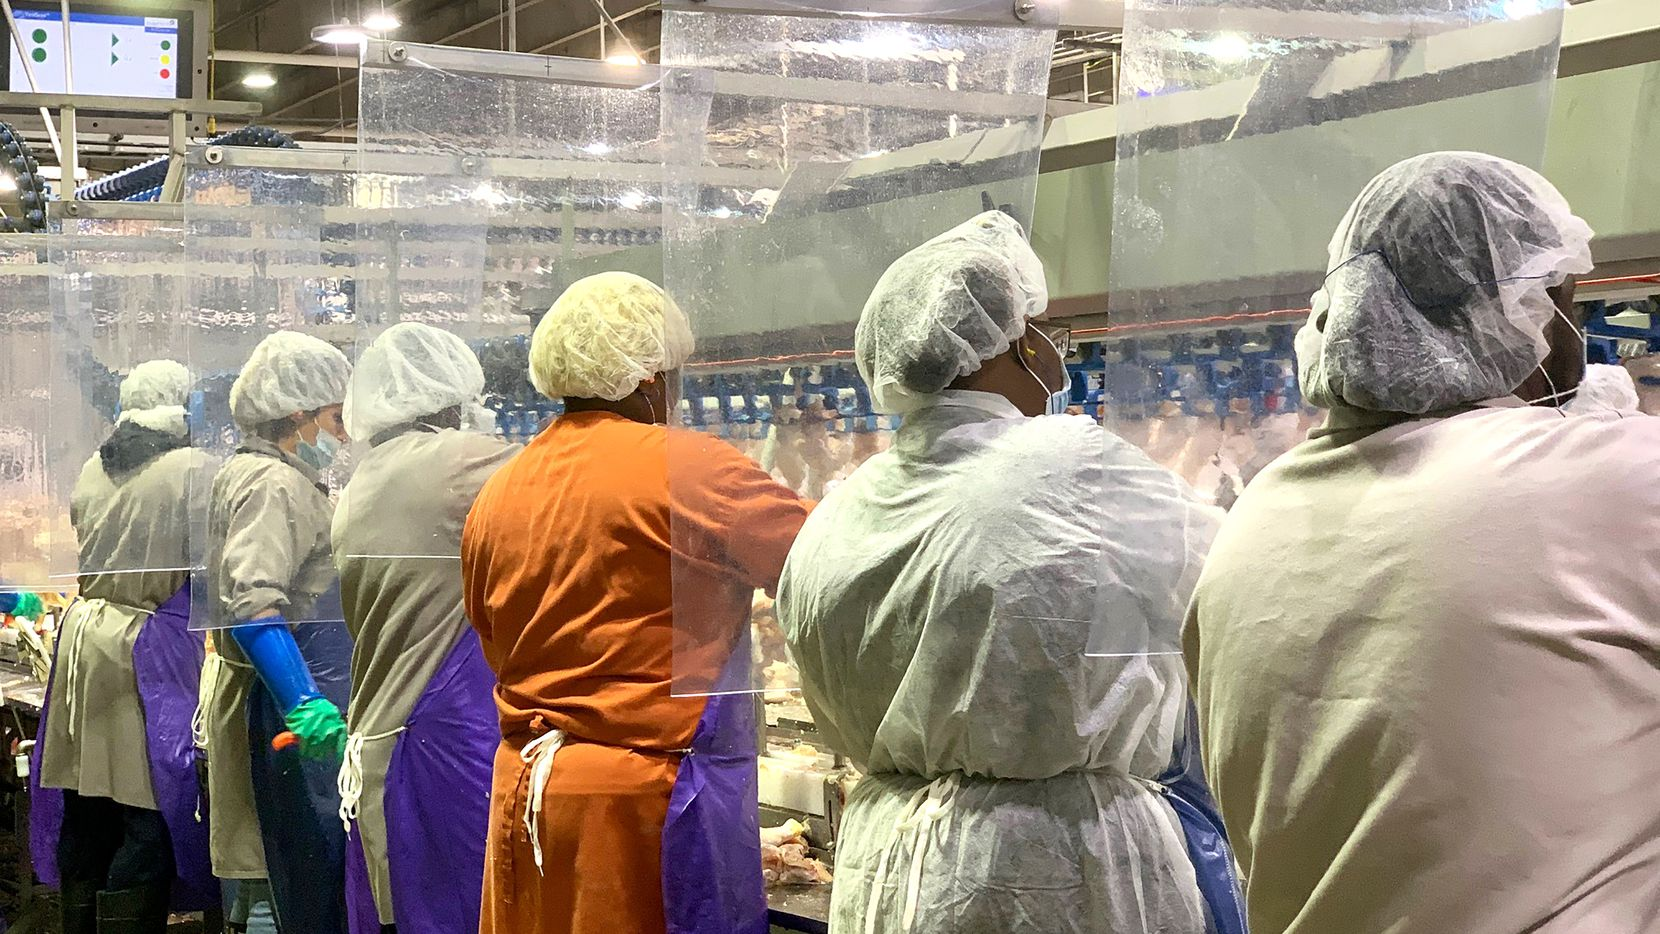 Two of Texas' top three counties for coronavirus prevalence have major meat-packing plants. Shown are Tyson Foods workers at a poultry processing plant in Camilia, Ga., plant who were outfitted with protective masks, standing between new plastic dividers added to create separation.